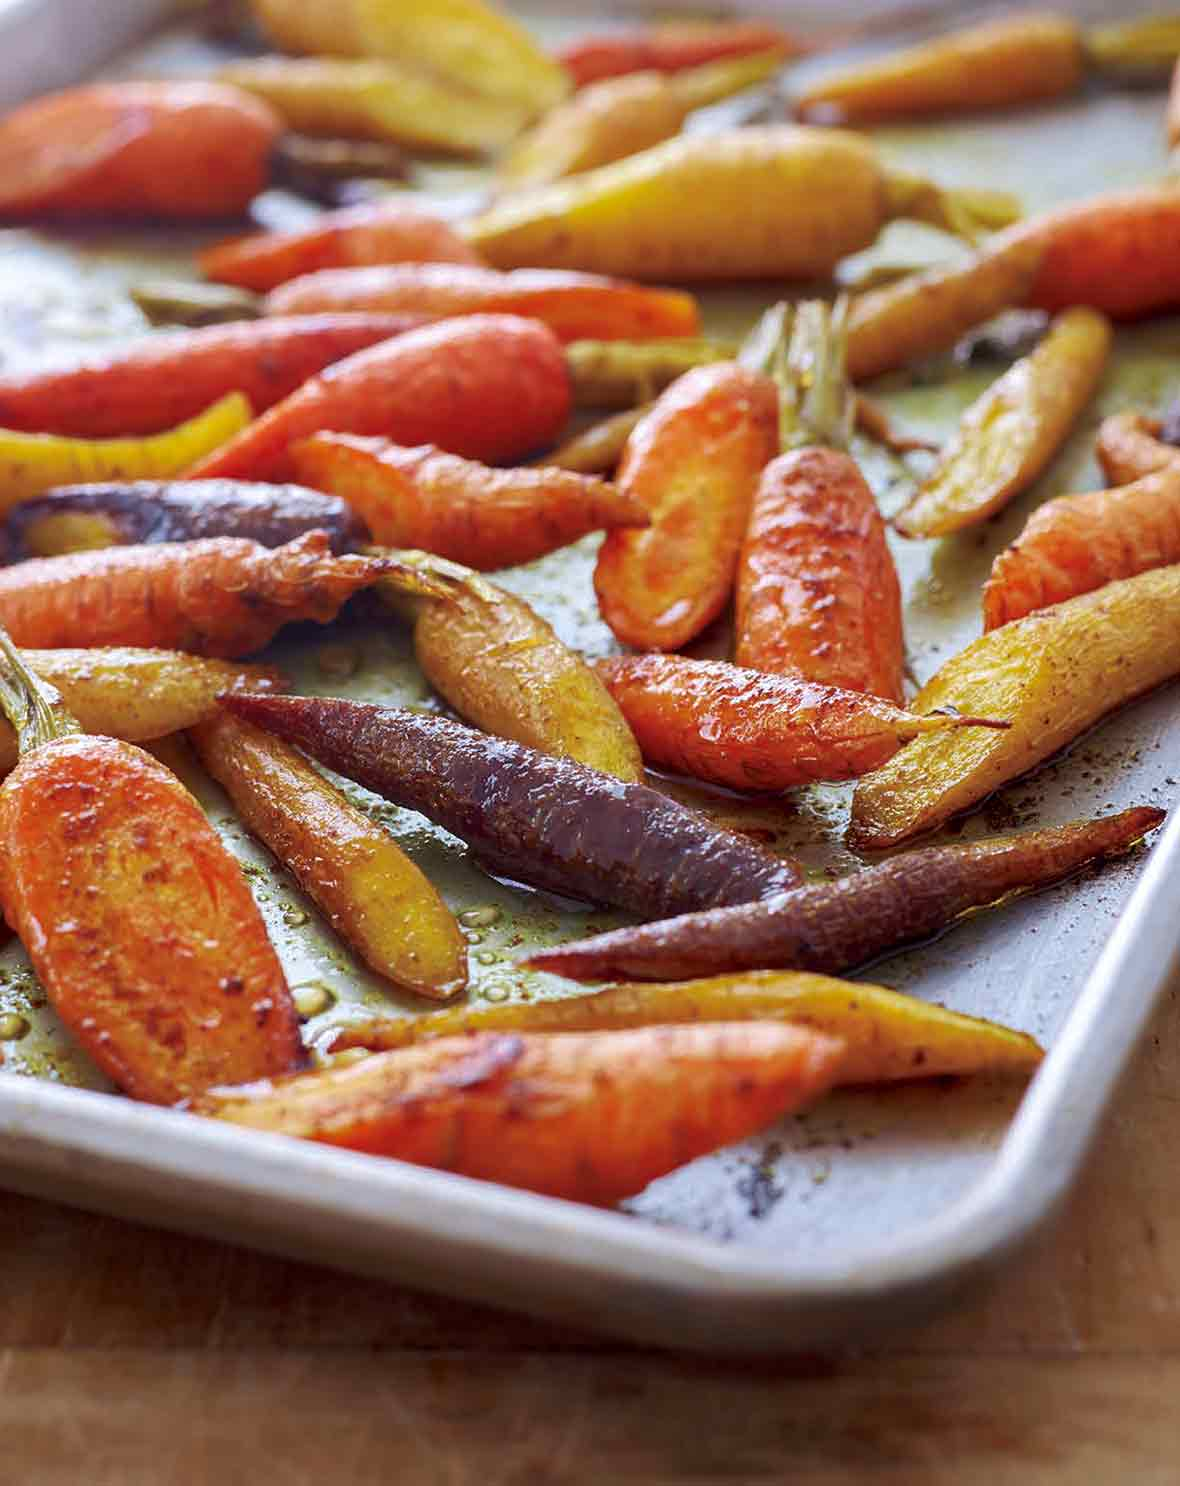 A baking sheet filled with orange, yellow, and purple curried roasted carrots